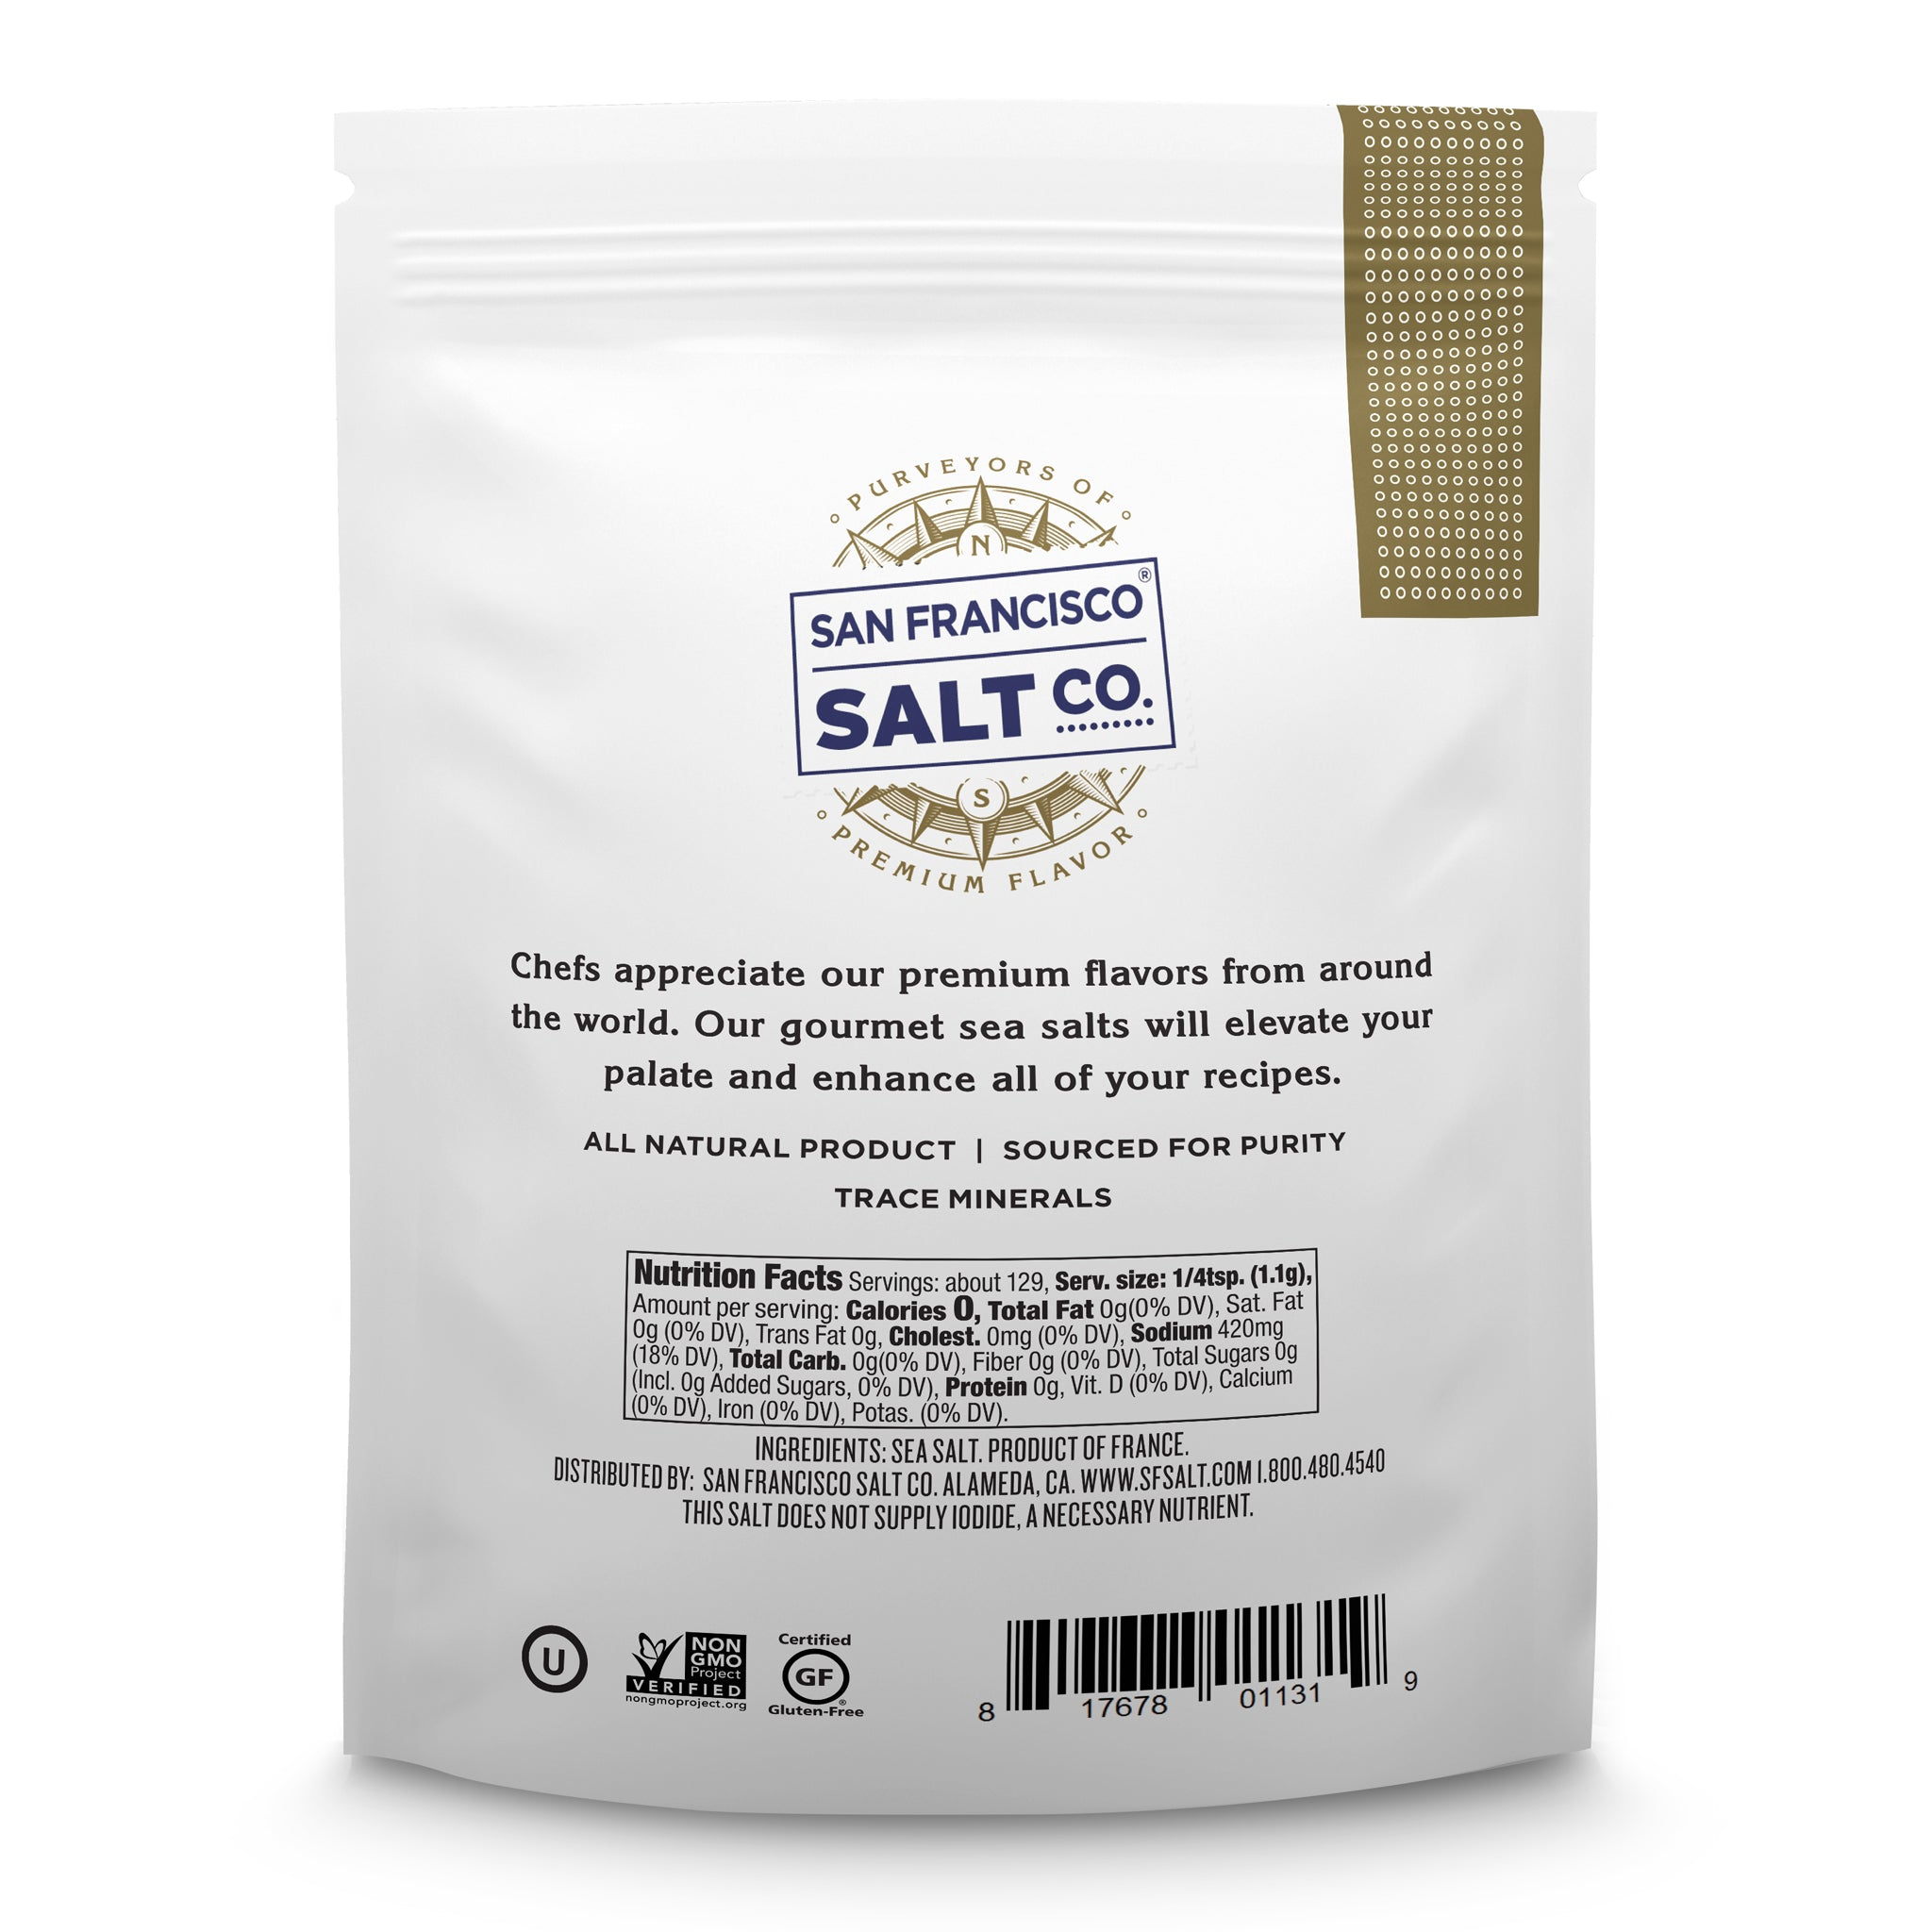 French Grey Sea Salt 5oz Bag - Fine Grain - San Francisco Salt Company